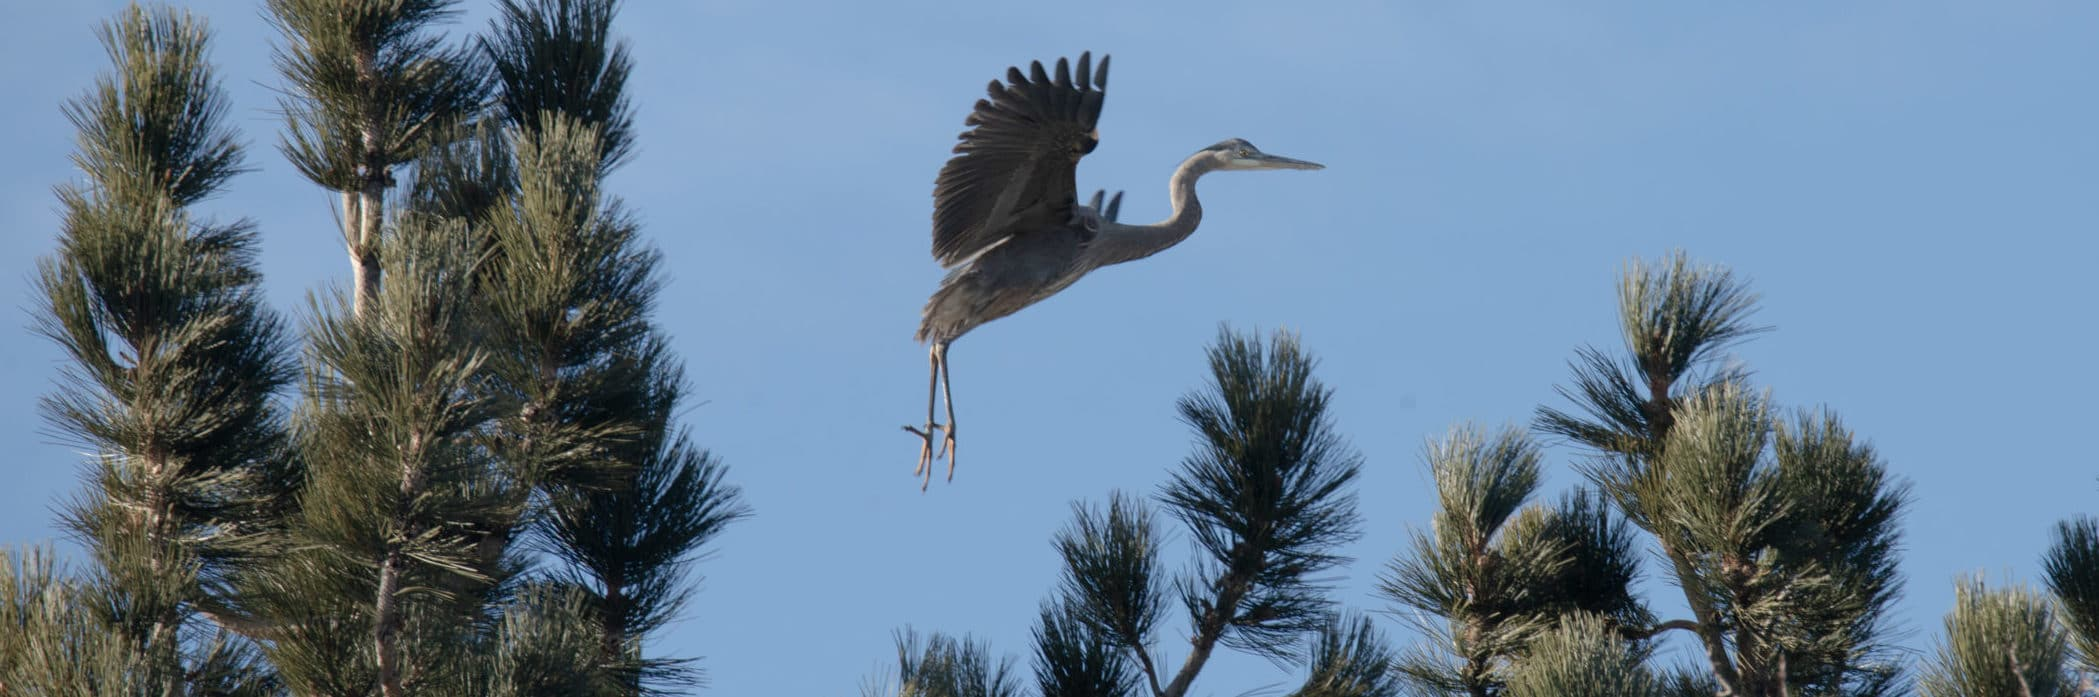 A Great Blue Heron with its wings out, legs dangling, and toes spread, appears to be taking off from an unseen location below and is surrounded by pine trees against a blue sky.